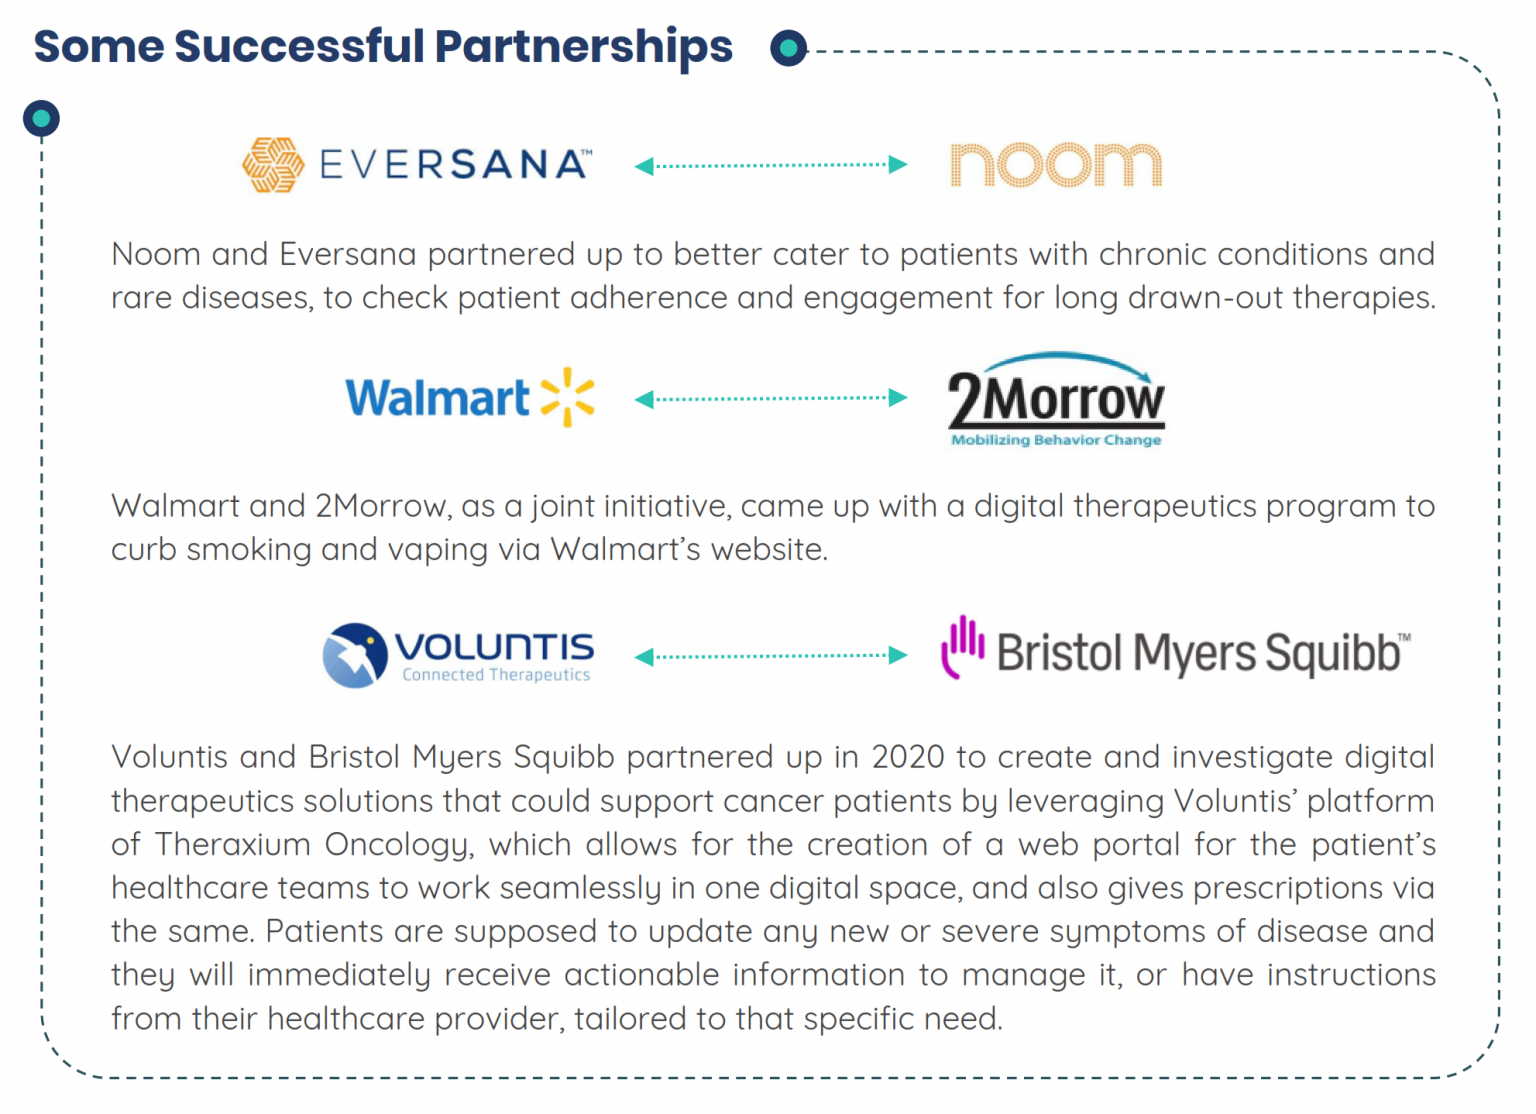 Some Successful Partnerships